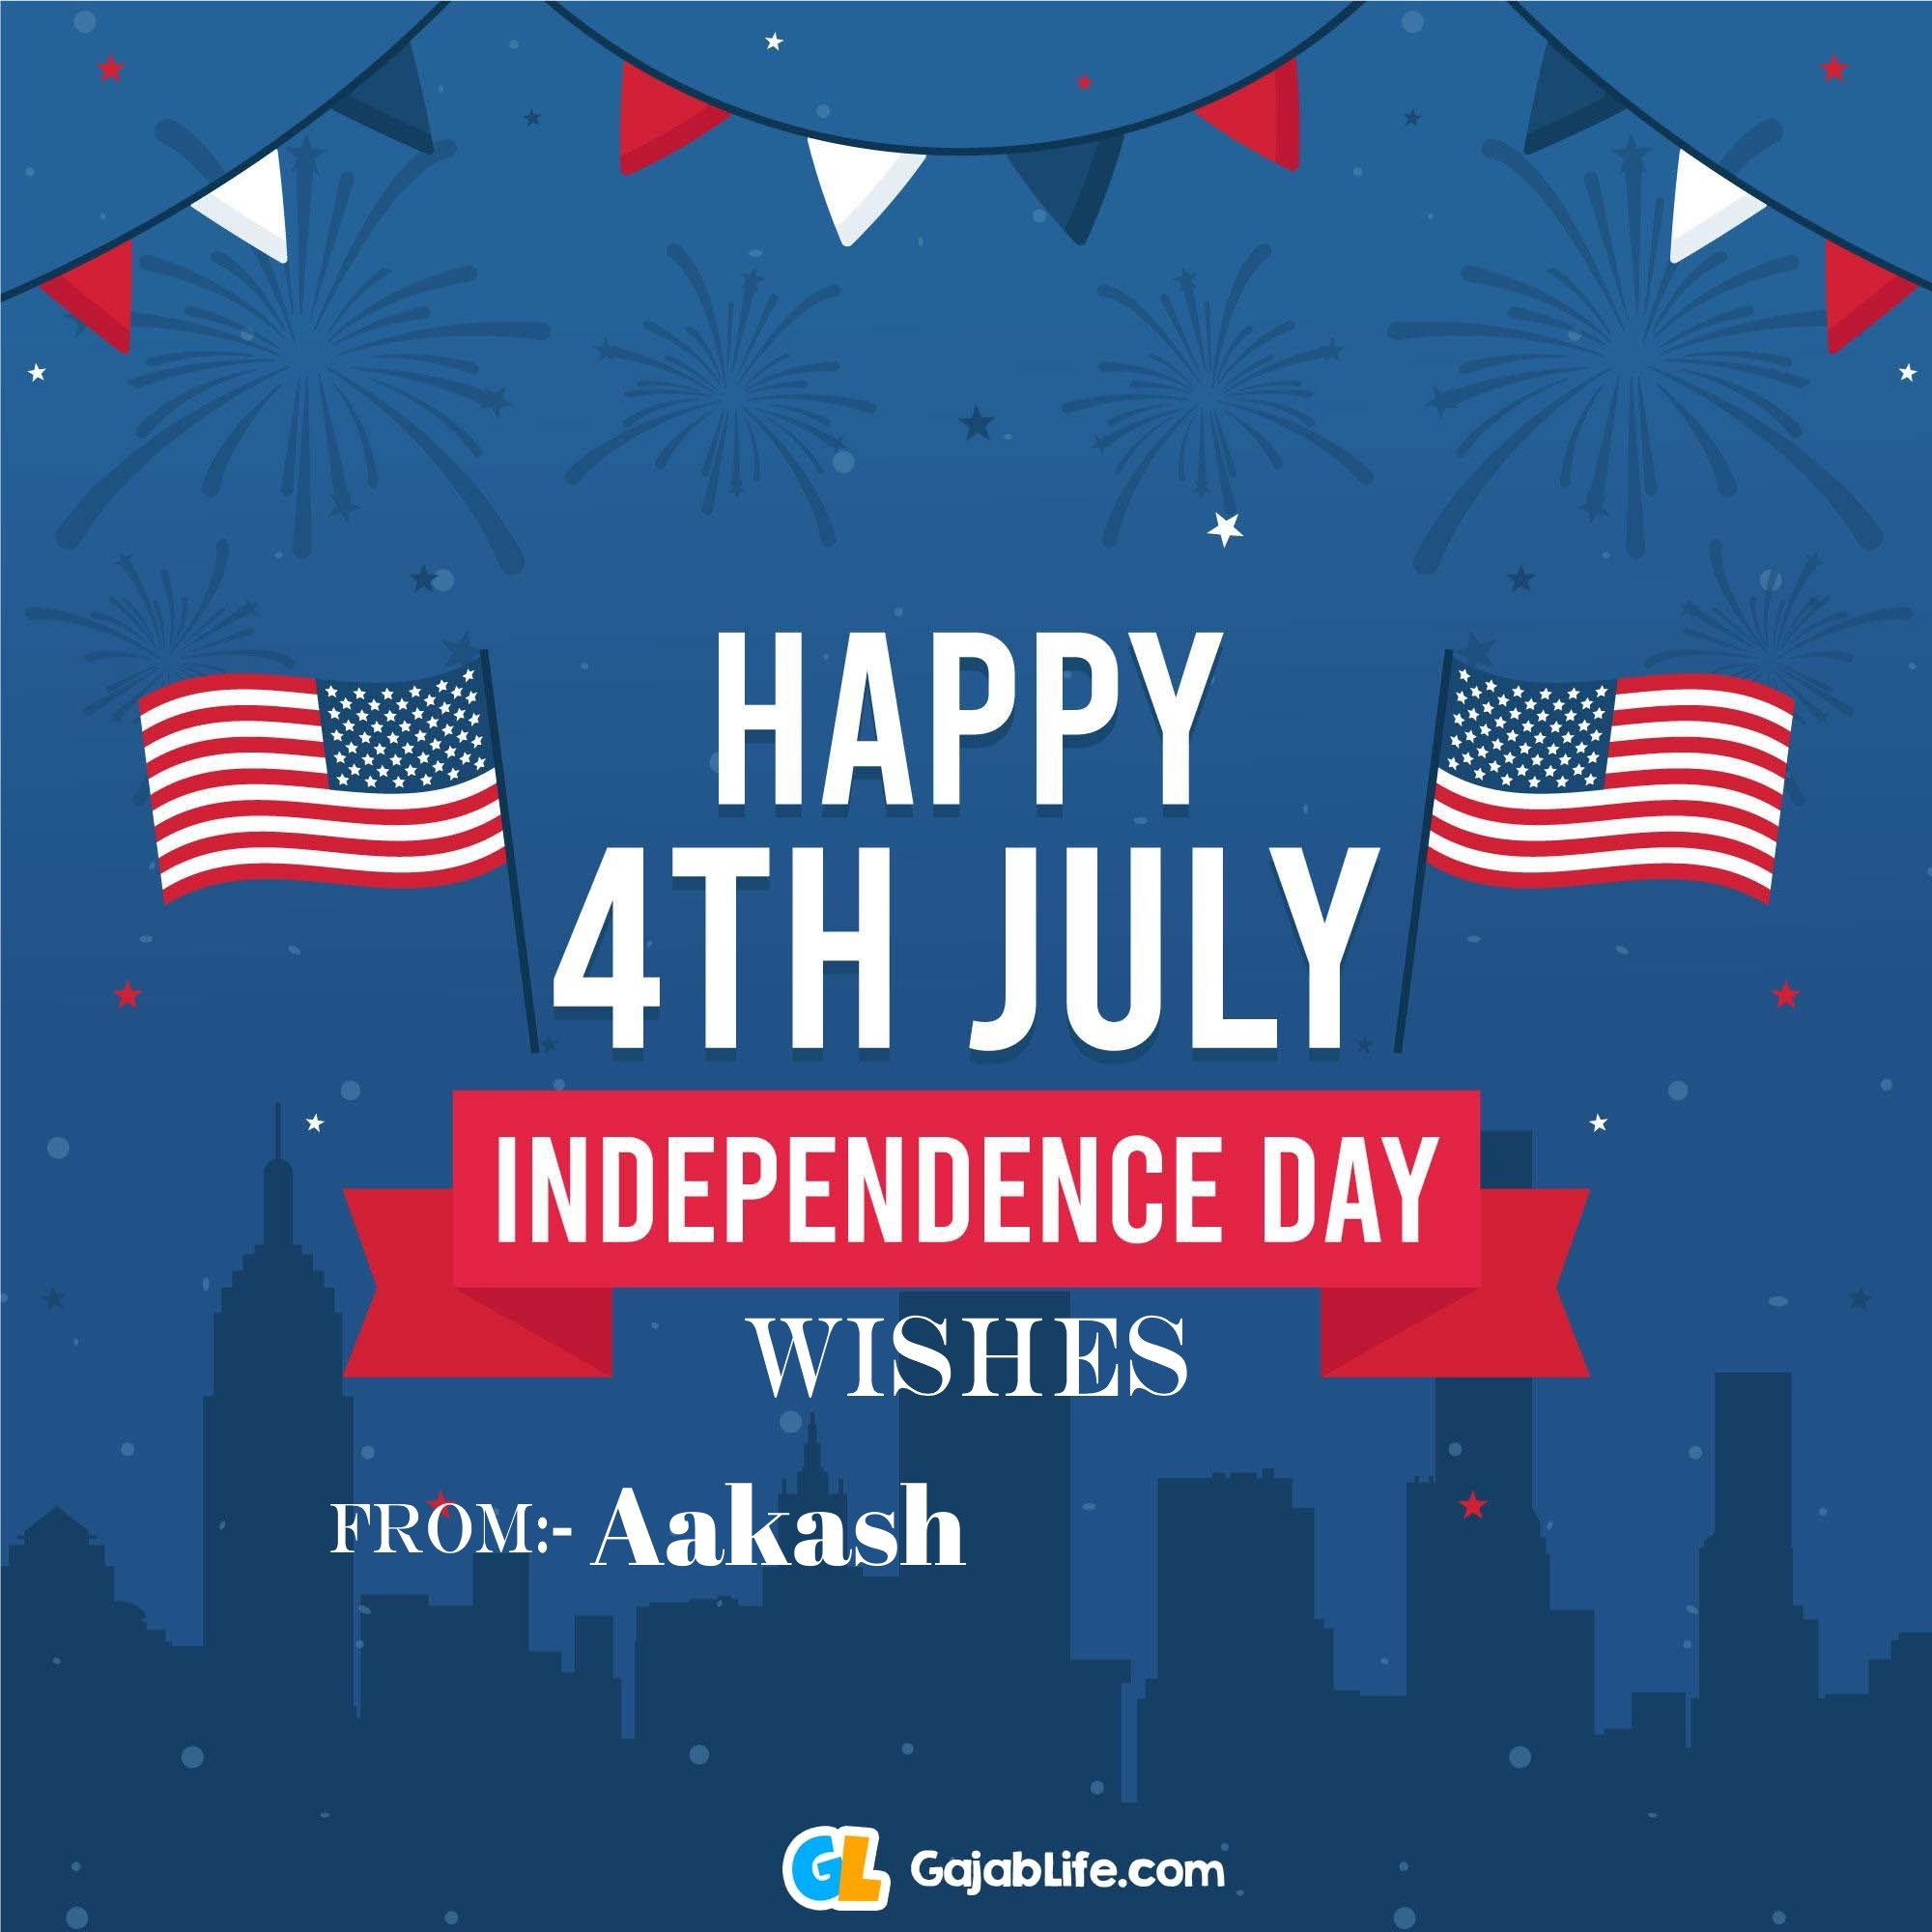 Aakash happy independence day united states of america images